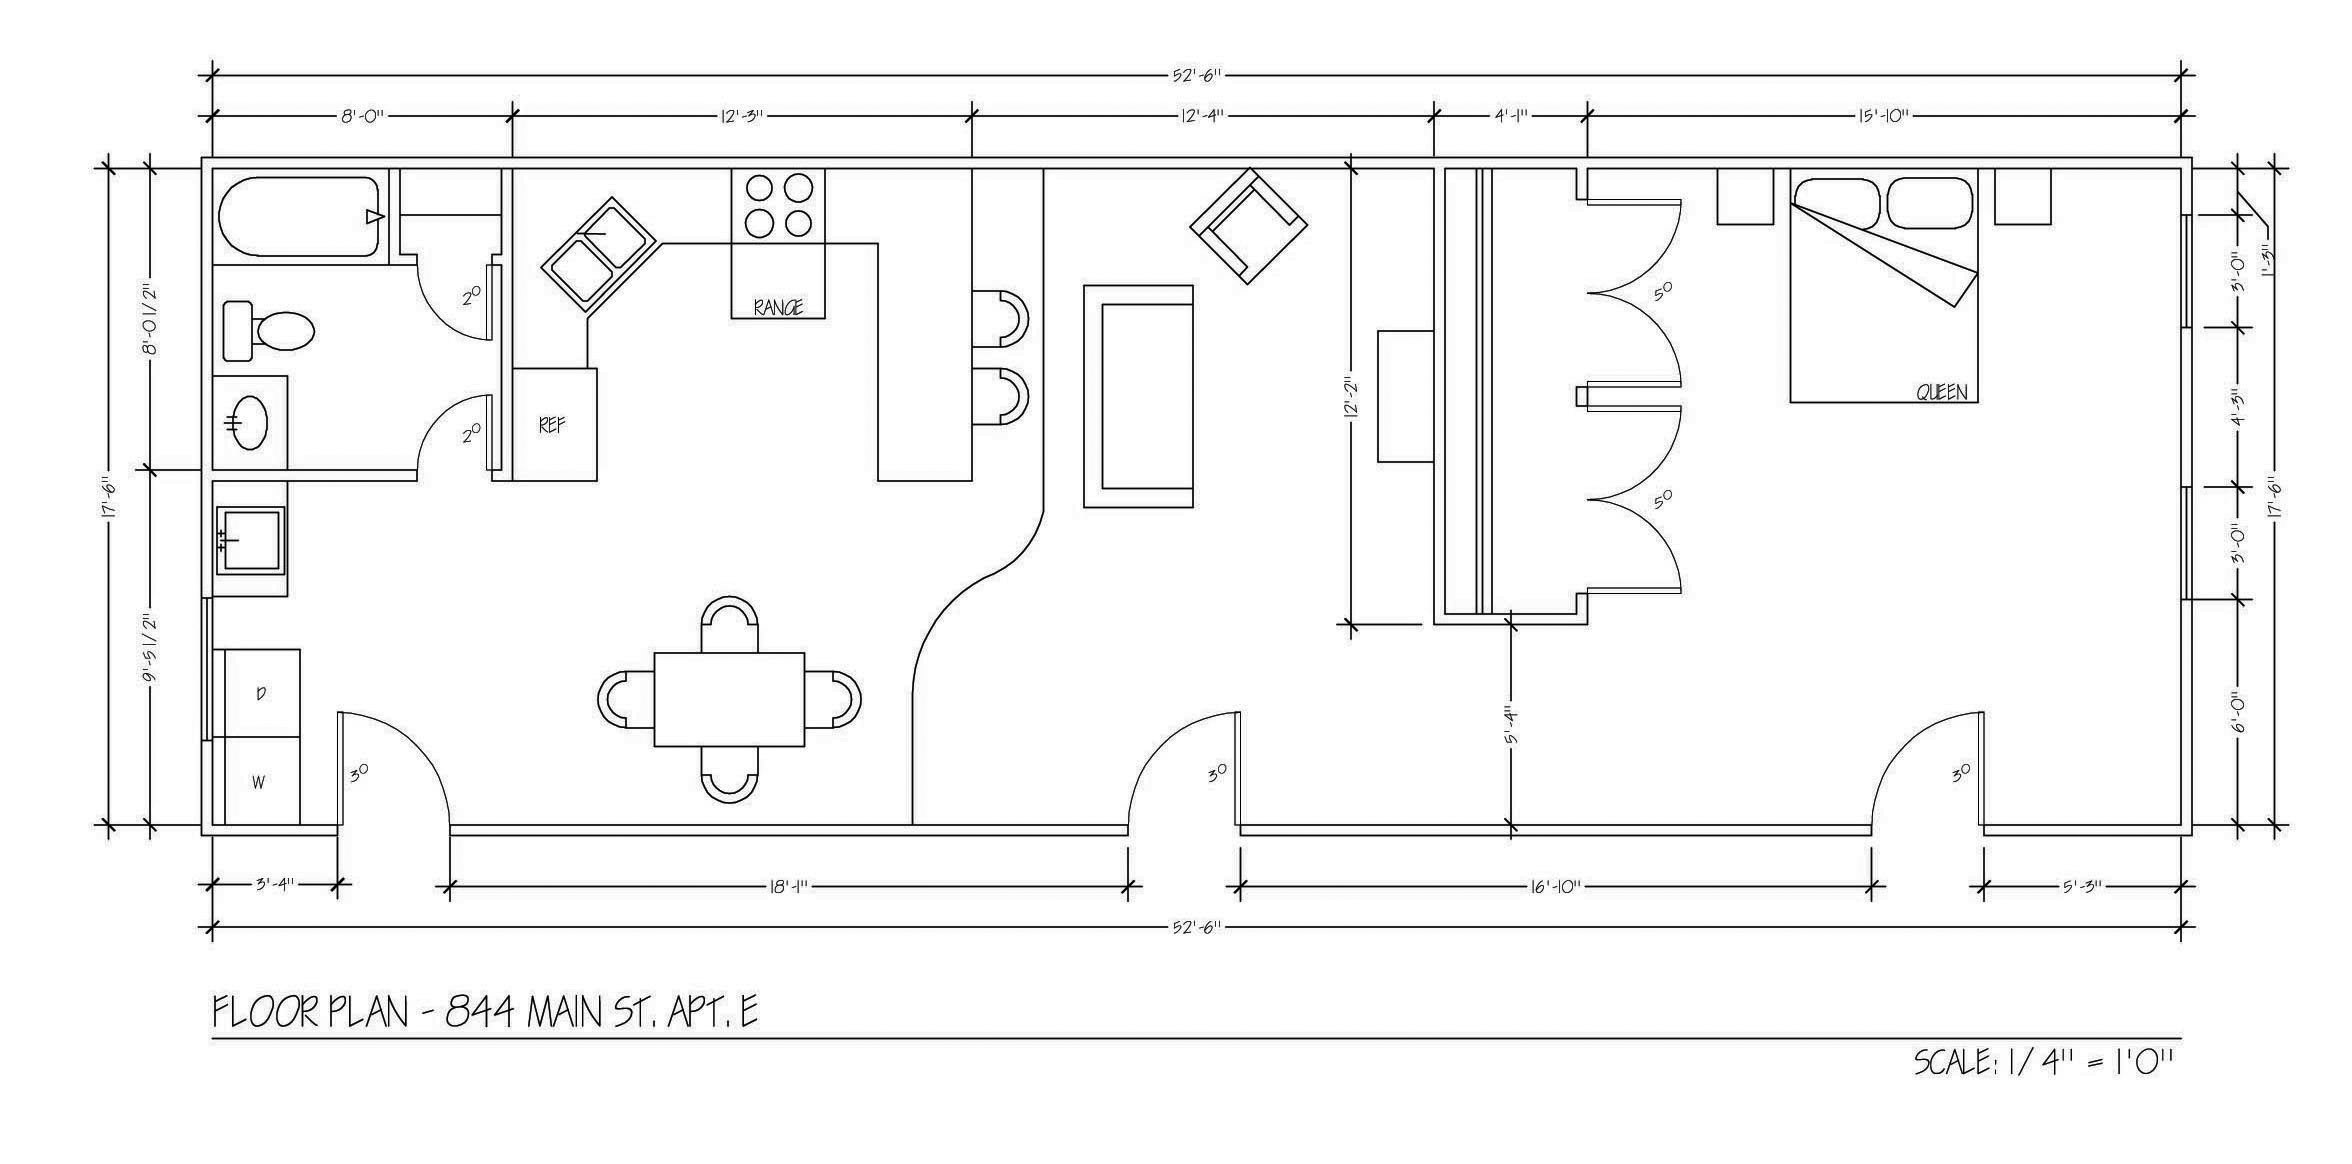 1000 Sq. Ft 2nd Floor Loft Apartment. Click Here For Floor Plan.